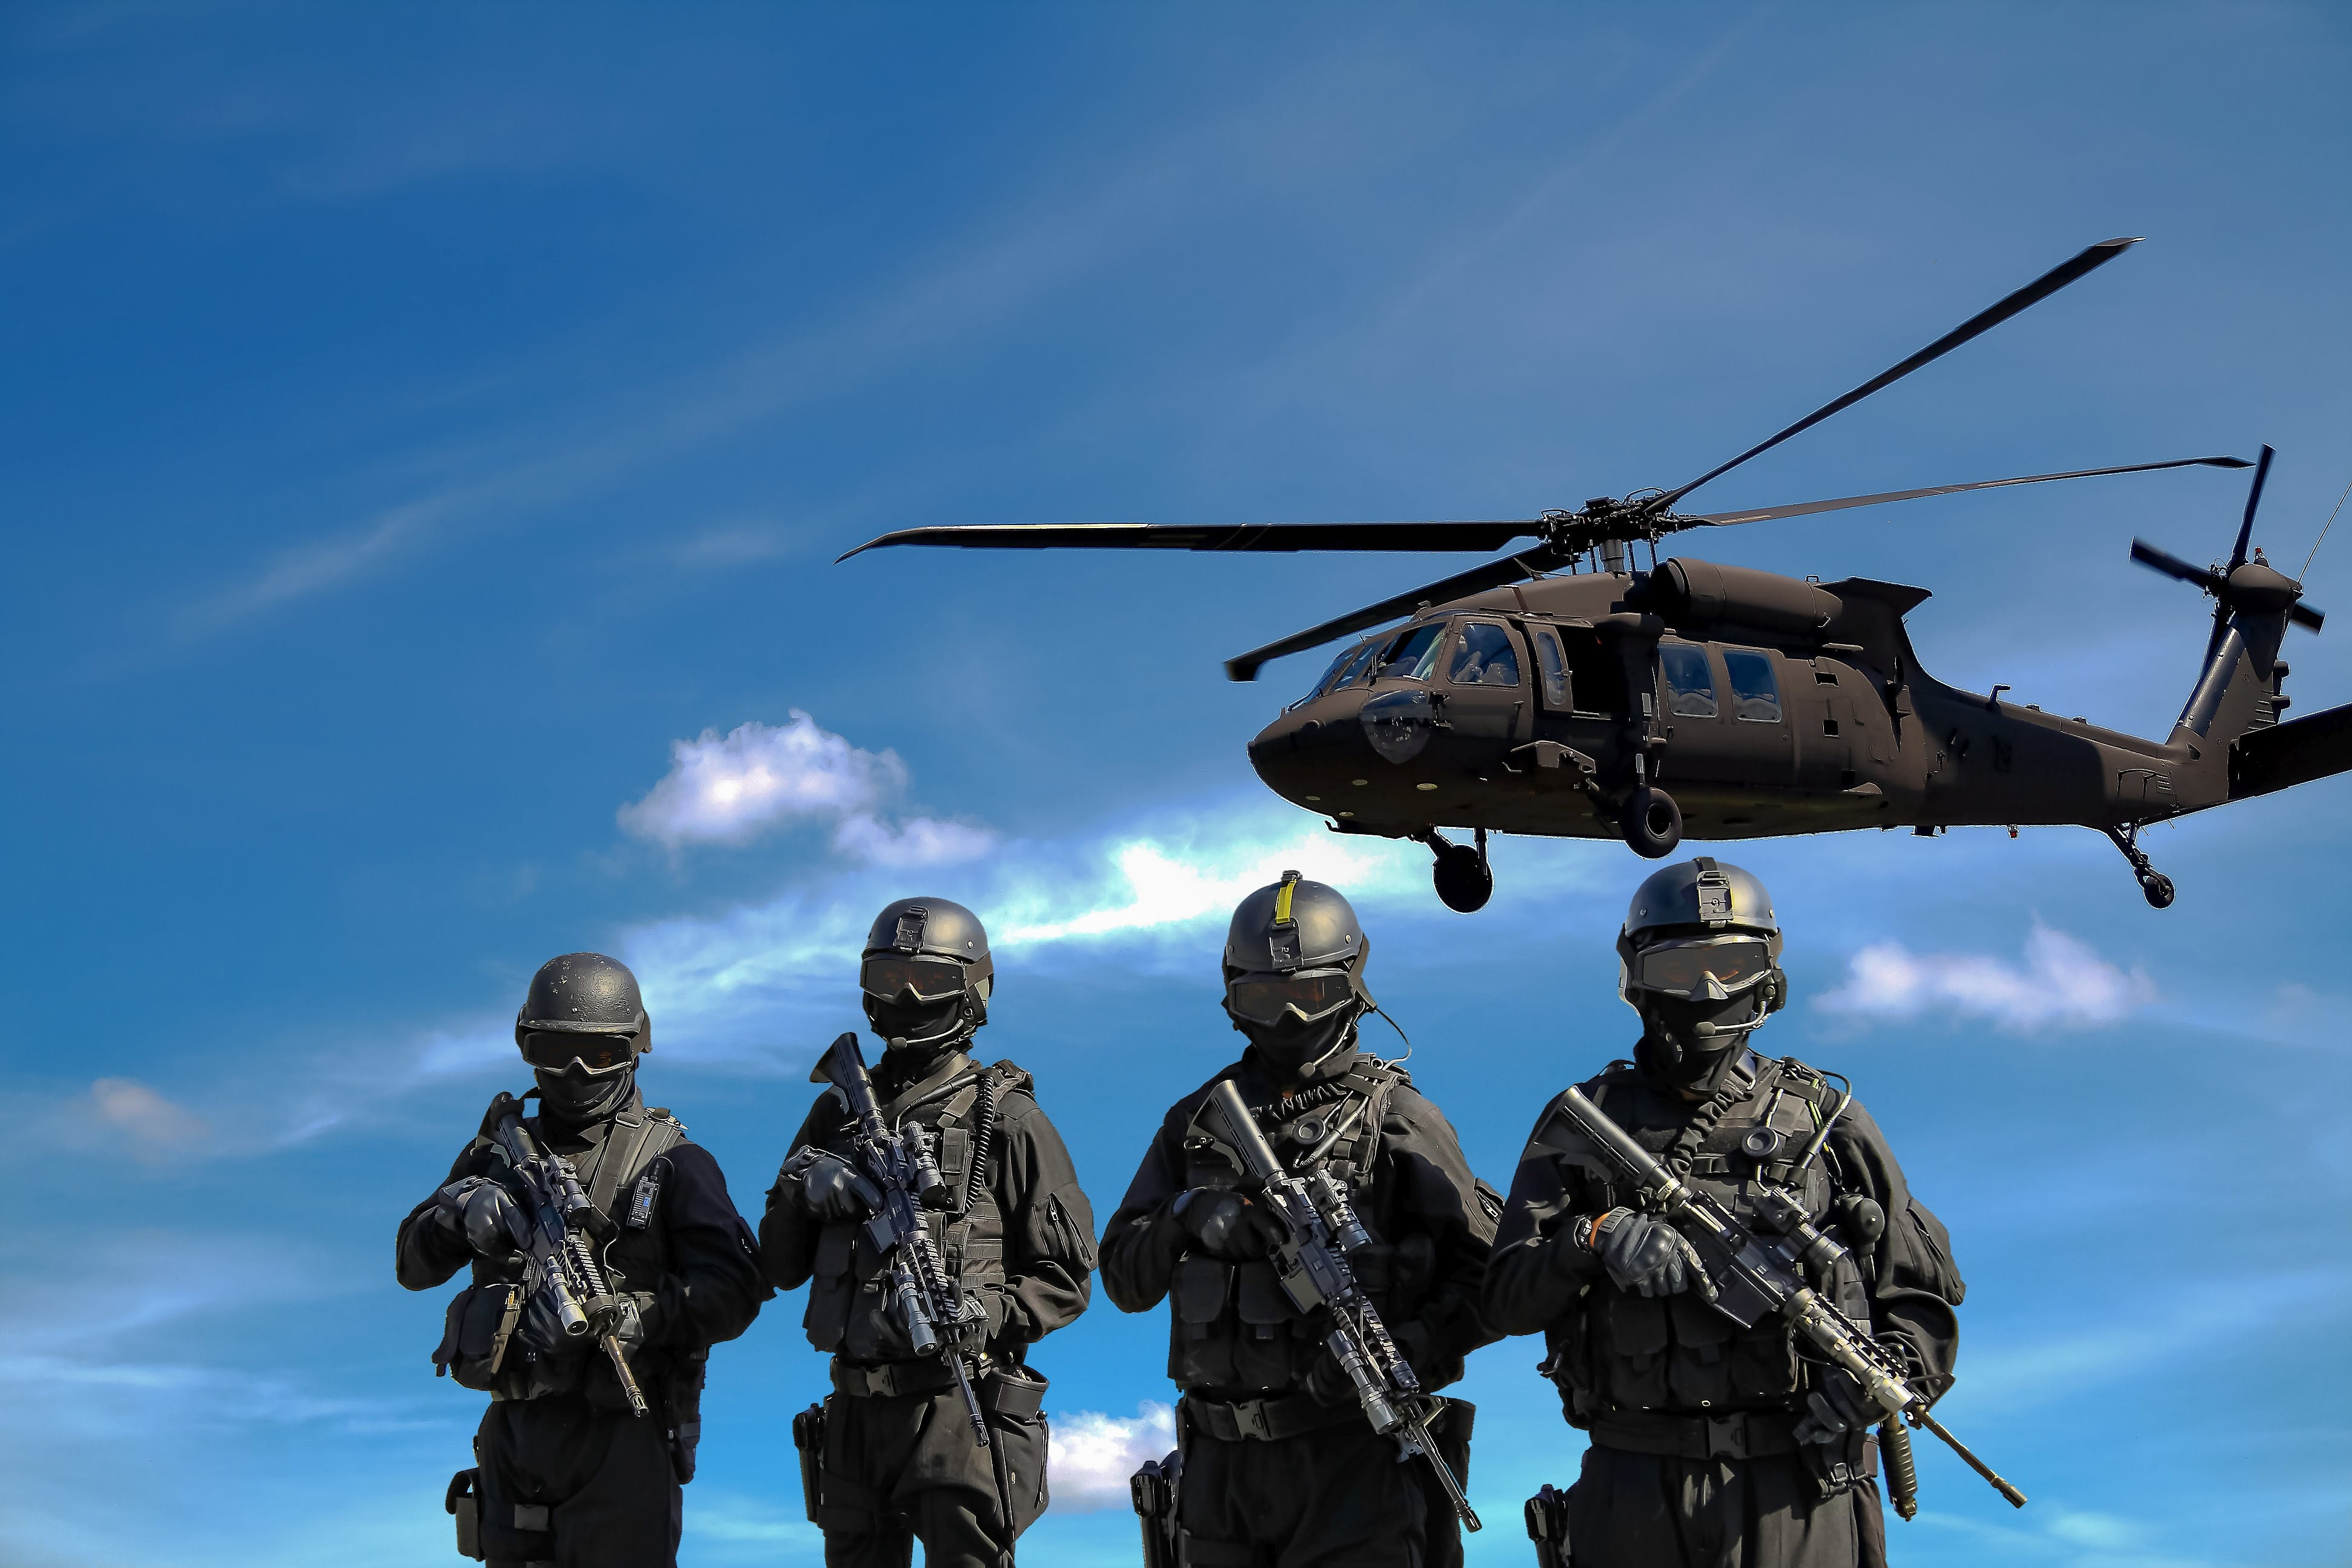 Four Soldiers Carrying Rifles Near Helicopter Under Blue Sky